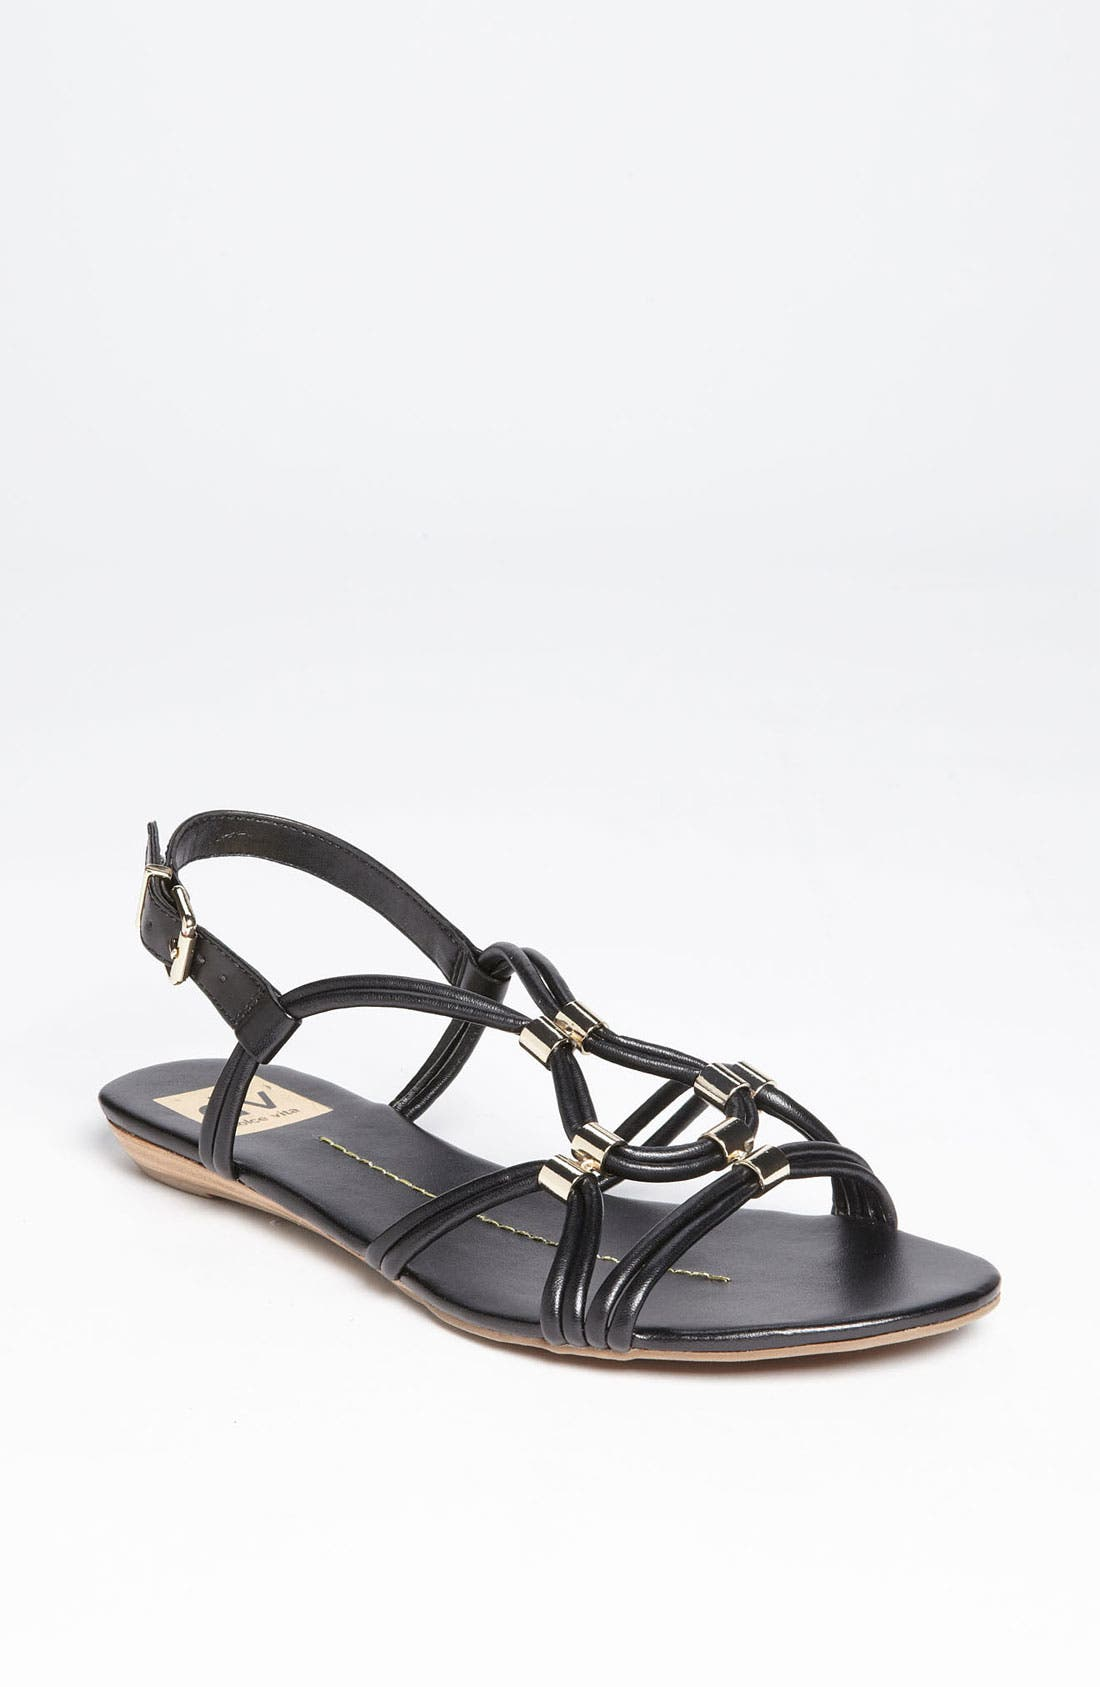 Alternate Image 1 Selected - DV by Dolce Vita 'Aneta' Sandal (Nordstrom Exclusive)